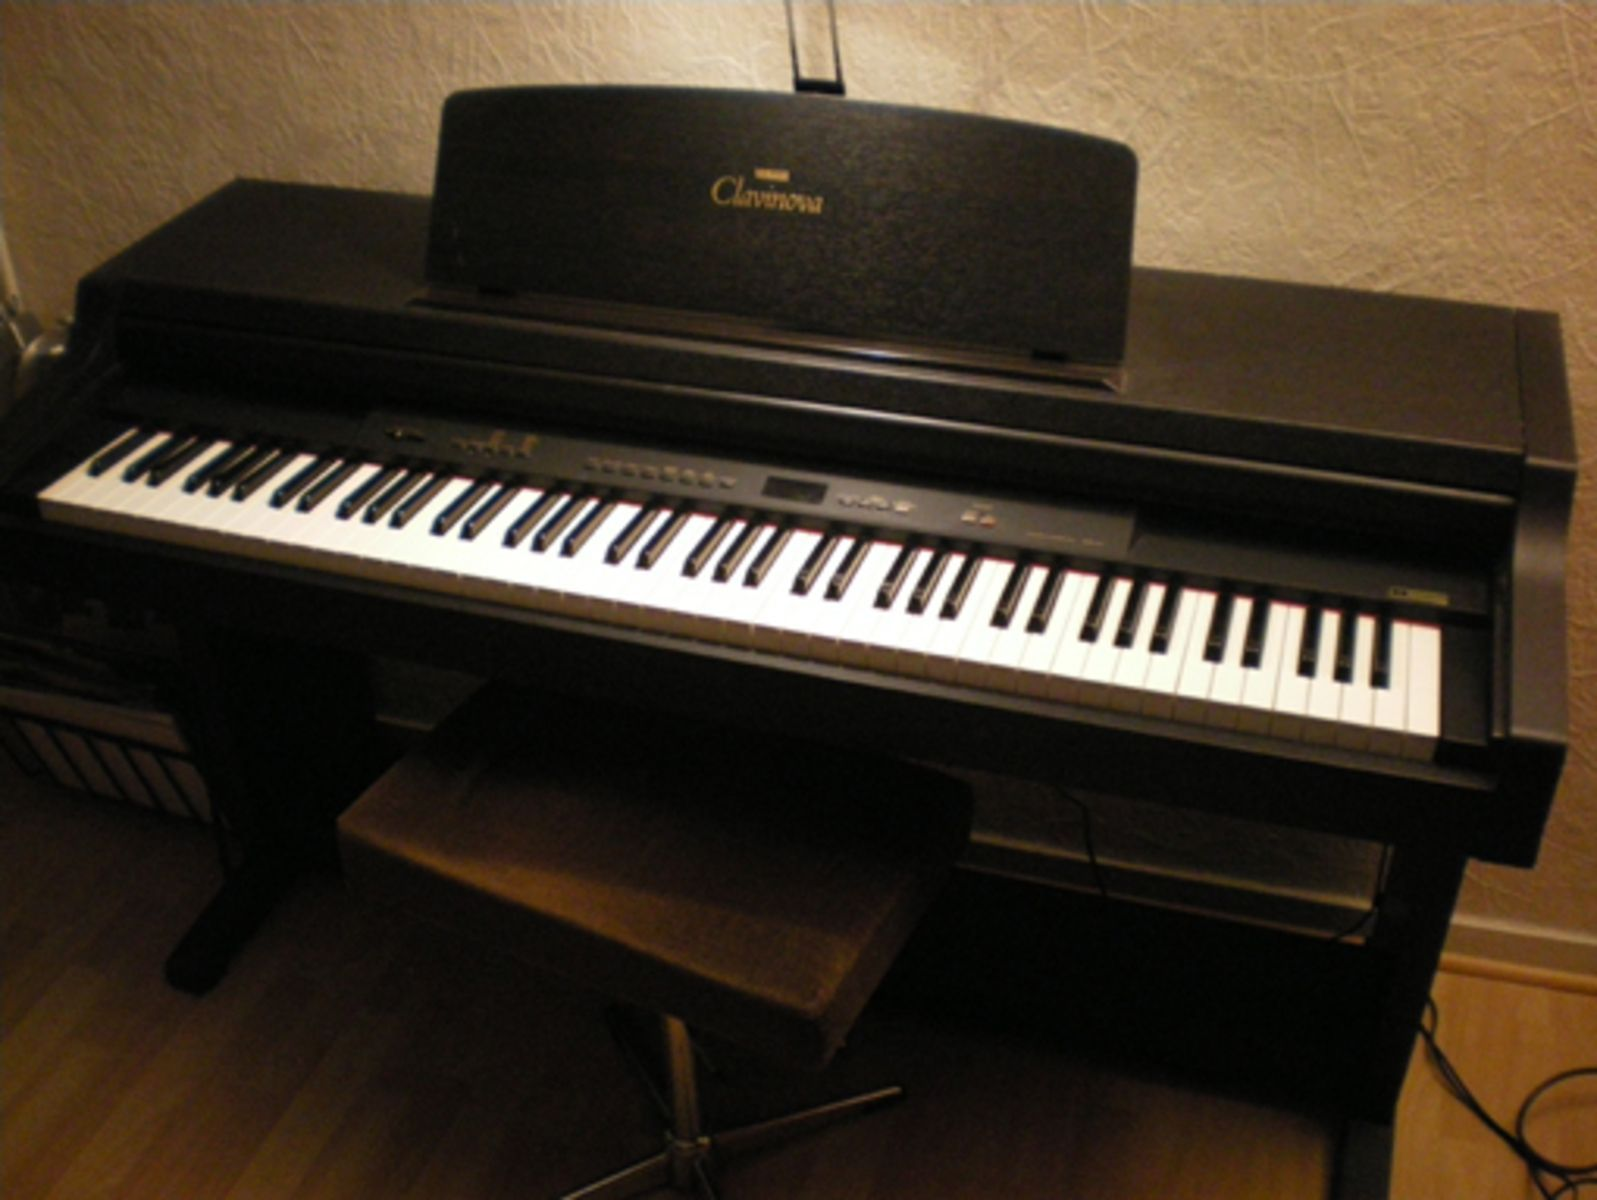 Yamaha clp 411 image 20474 audiofanzine for Yamaha clavinova price list